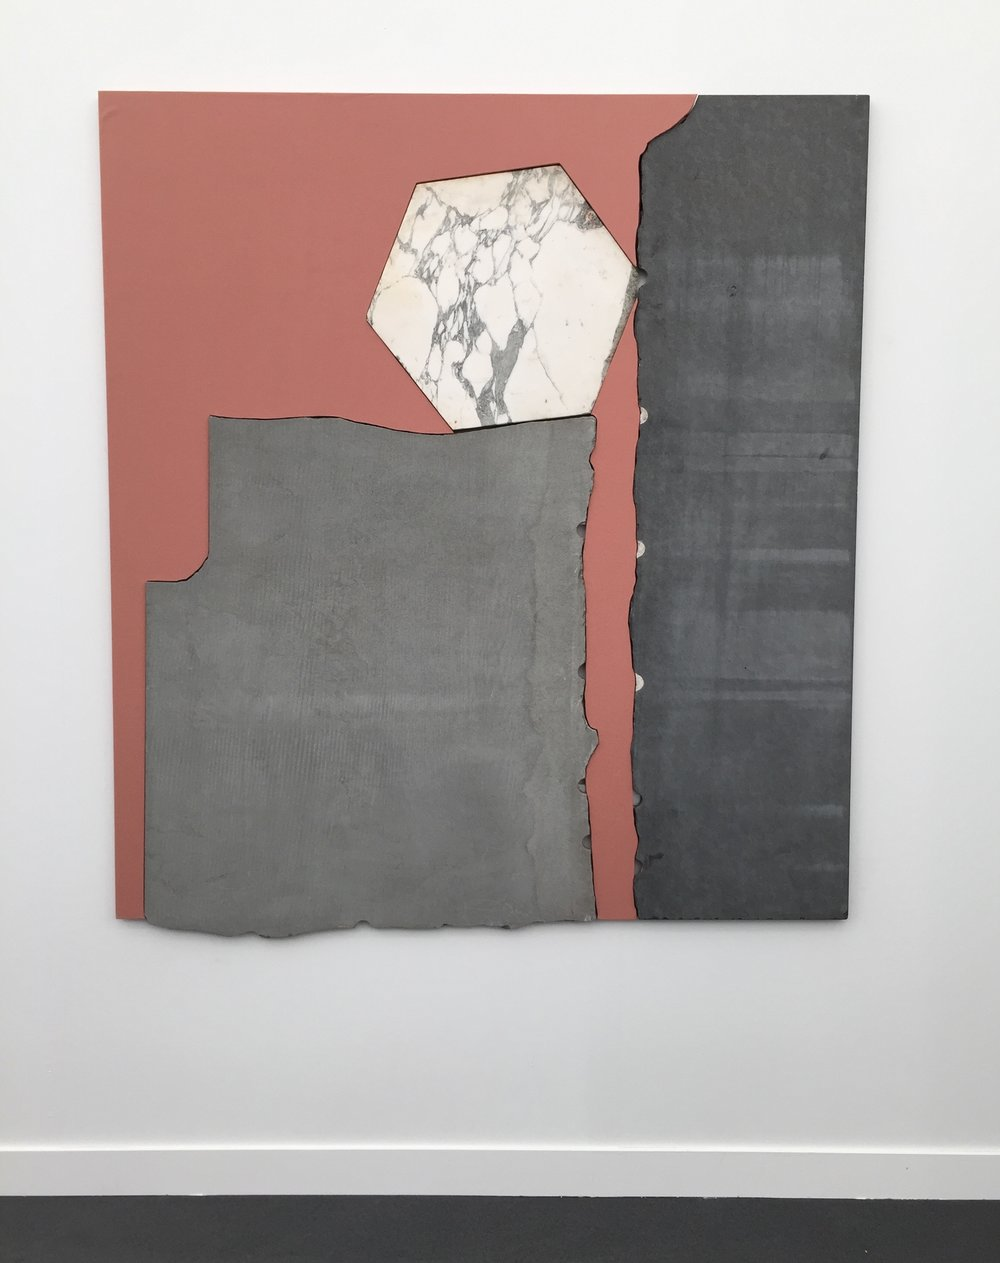 Sam Moyer, Untitled, 2017, Exhibited by Rodolphe Janssen Gallery